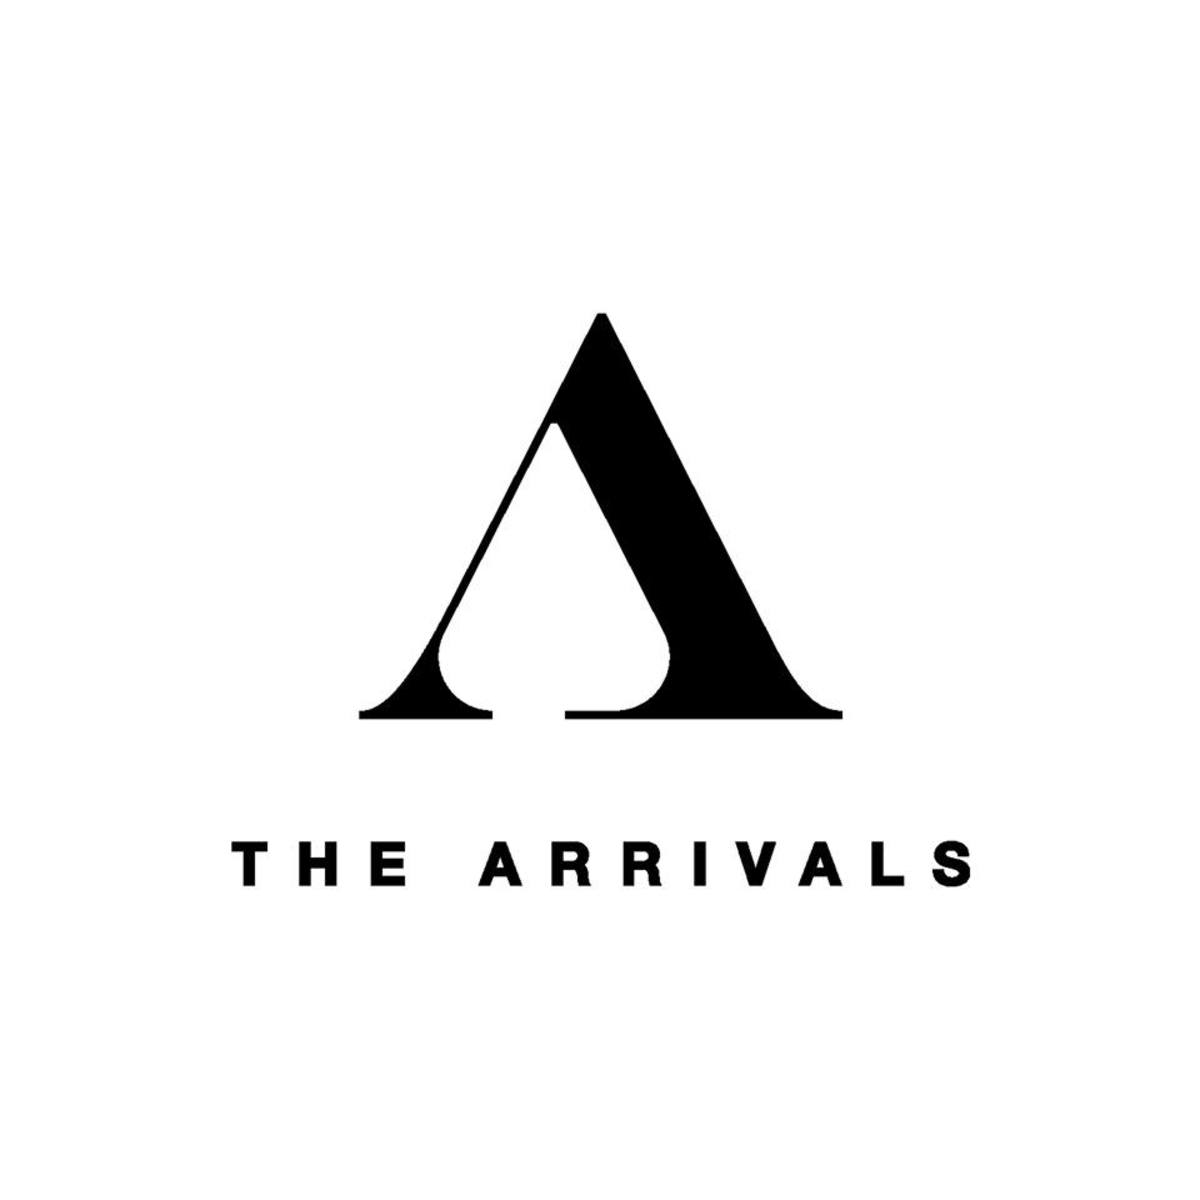 THE ARRIVALS Logo.jpg